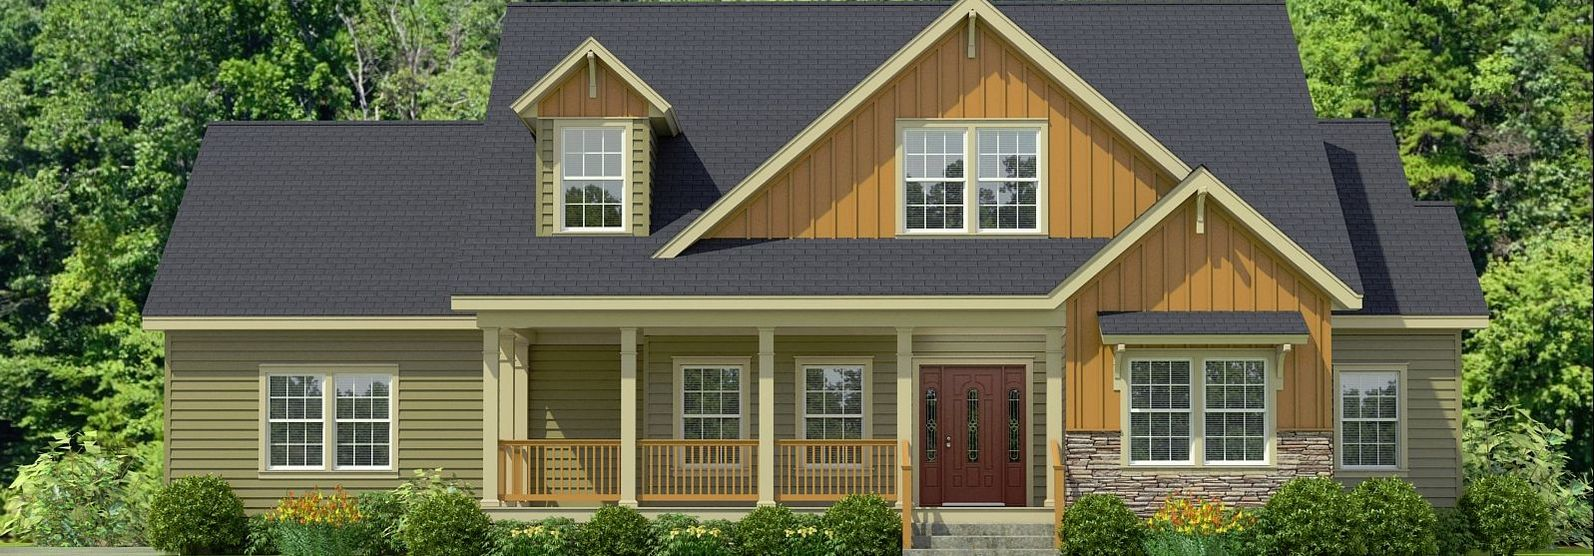 Maiden II Cape Cod Style Modular Home – High Quality, Full Functionality, and Aesthetic Appeal in One - Greensboro, NC